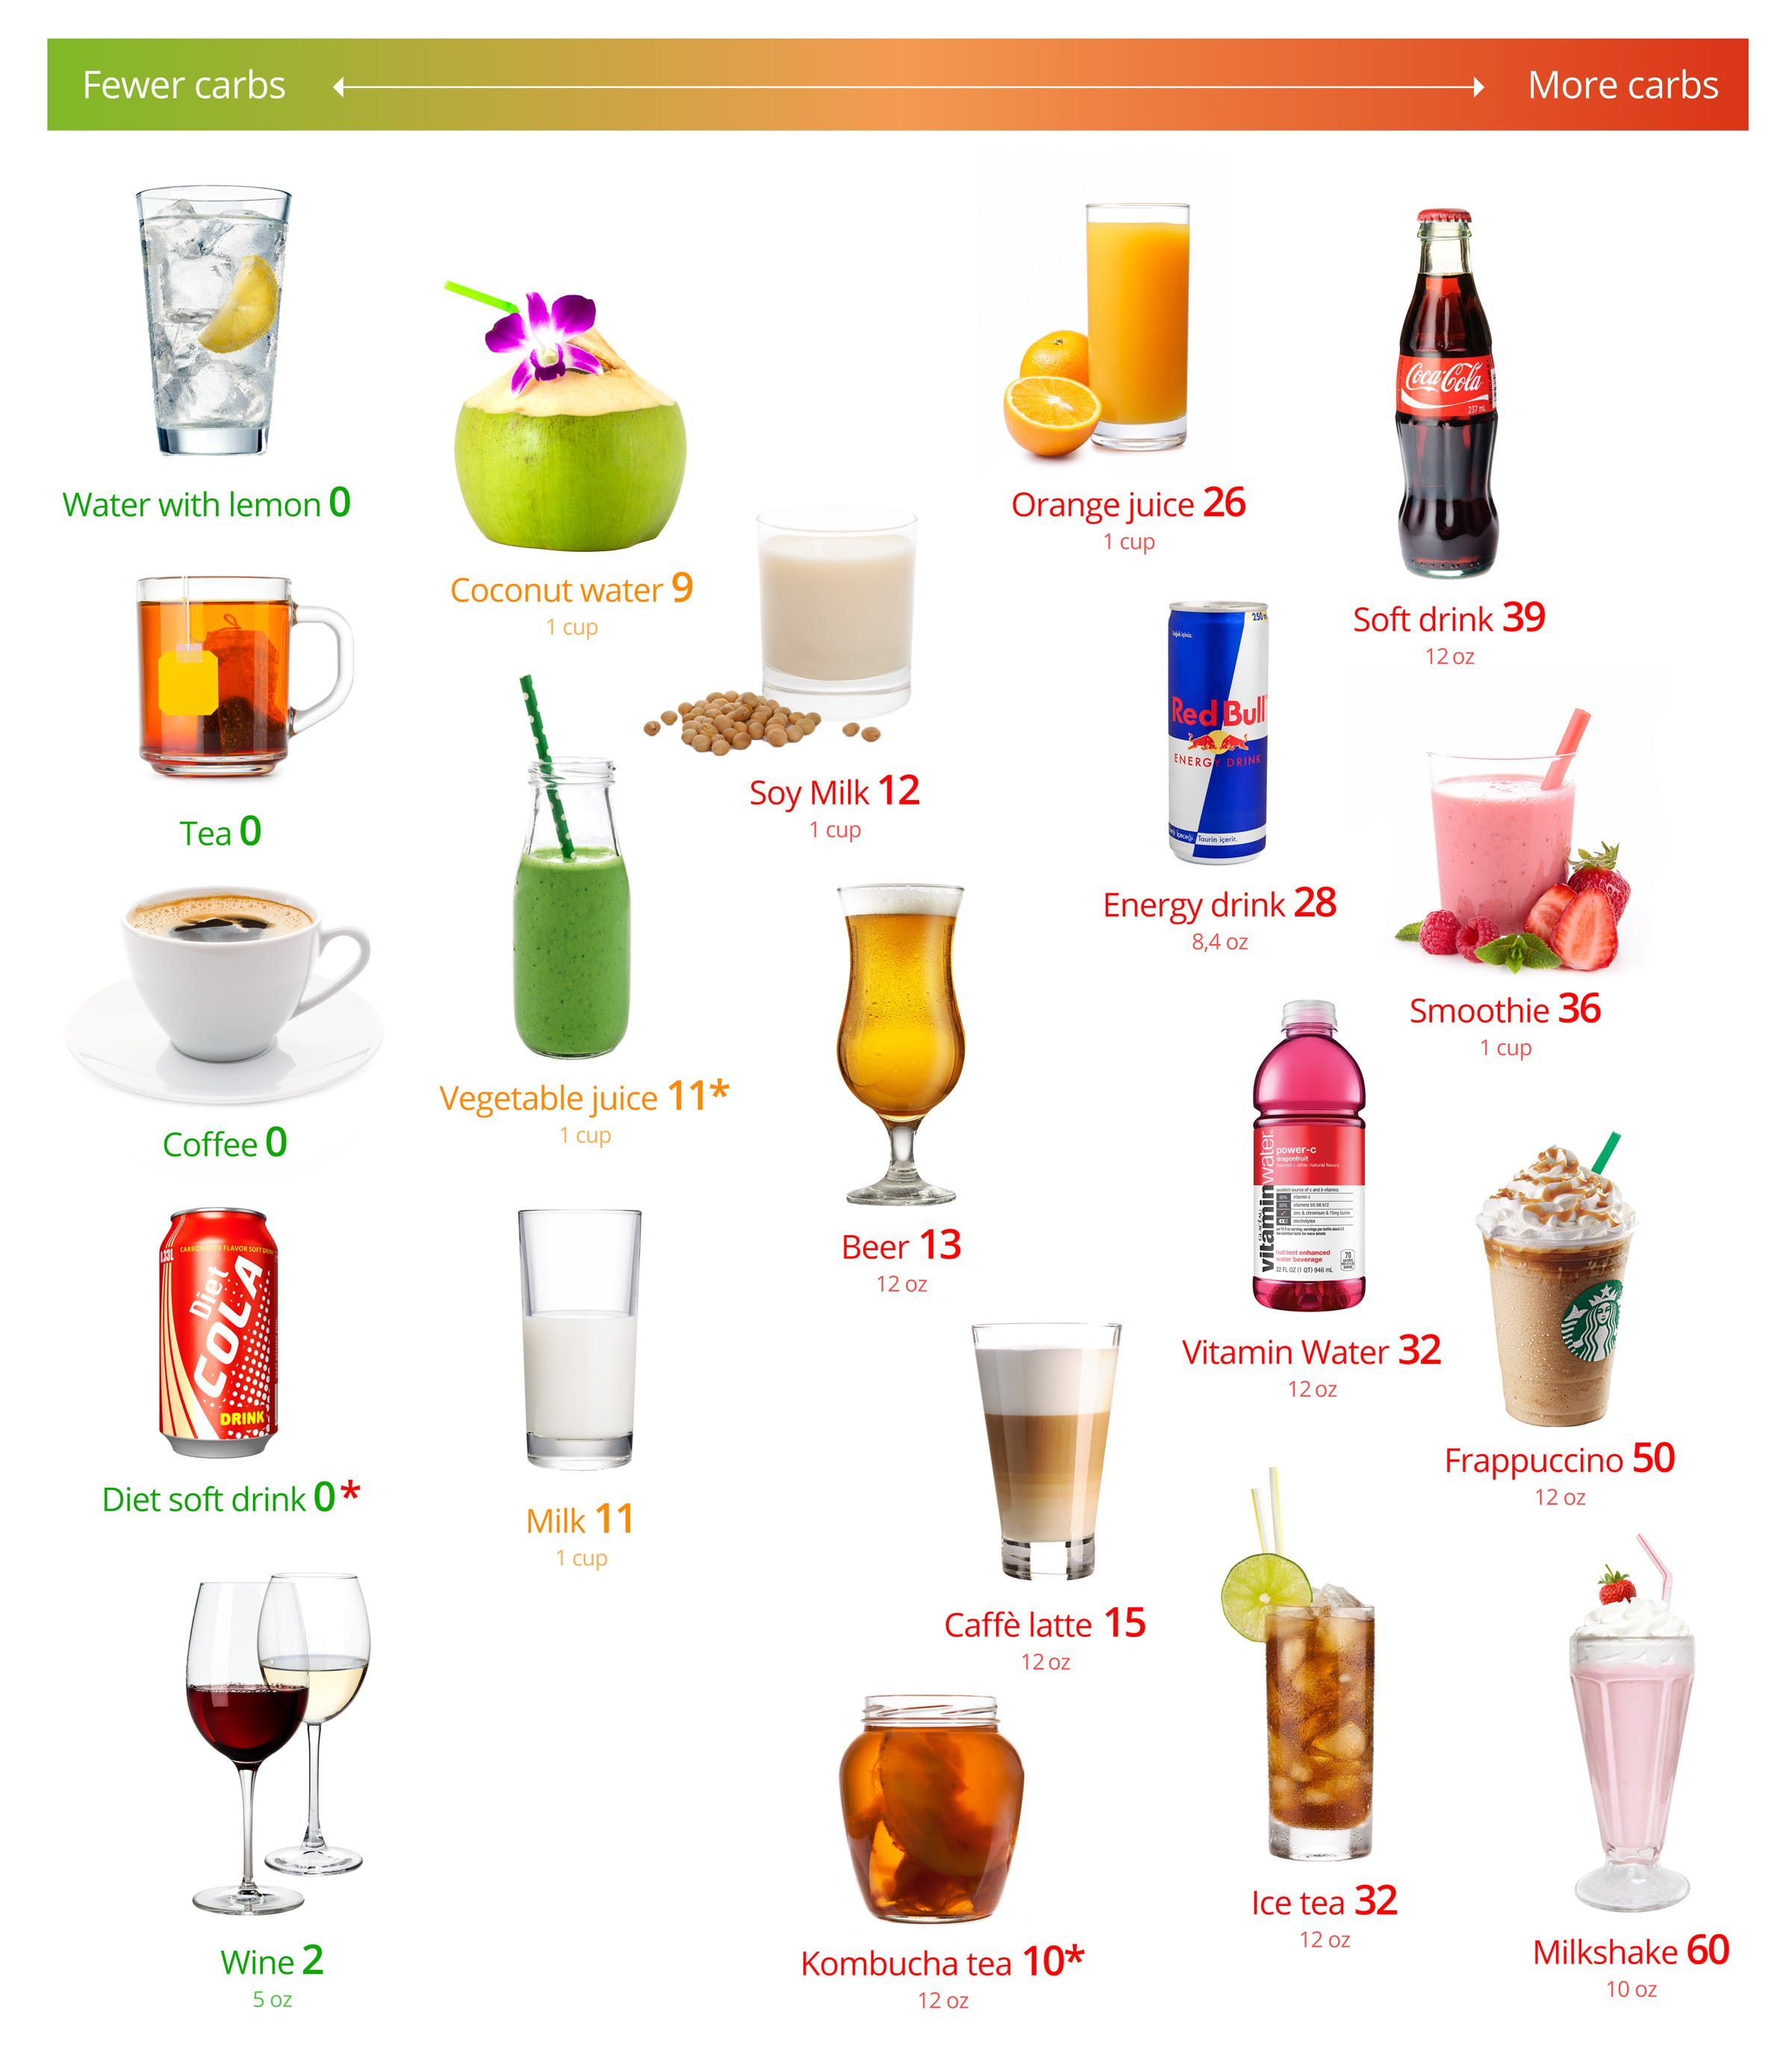 Low-carb drinks – the best and the worst